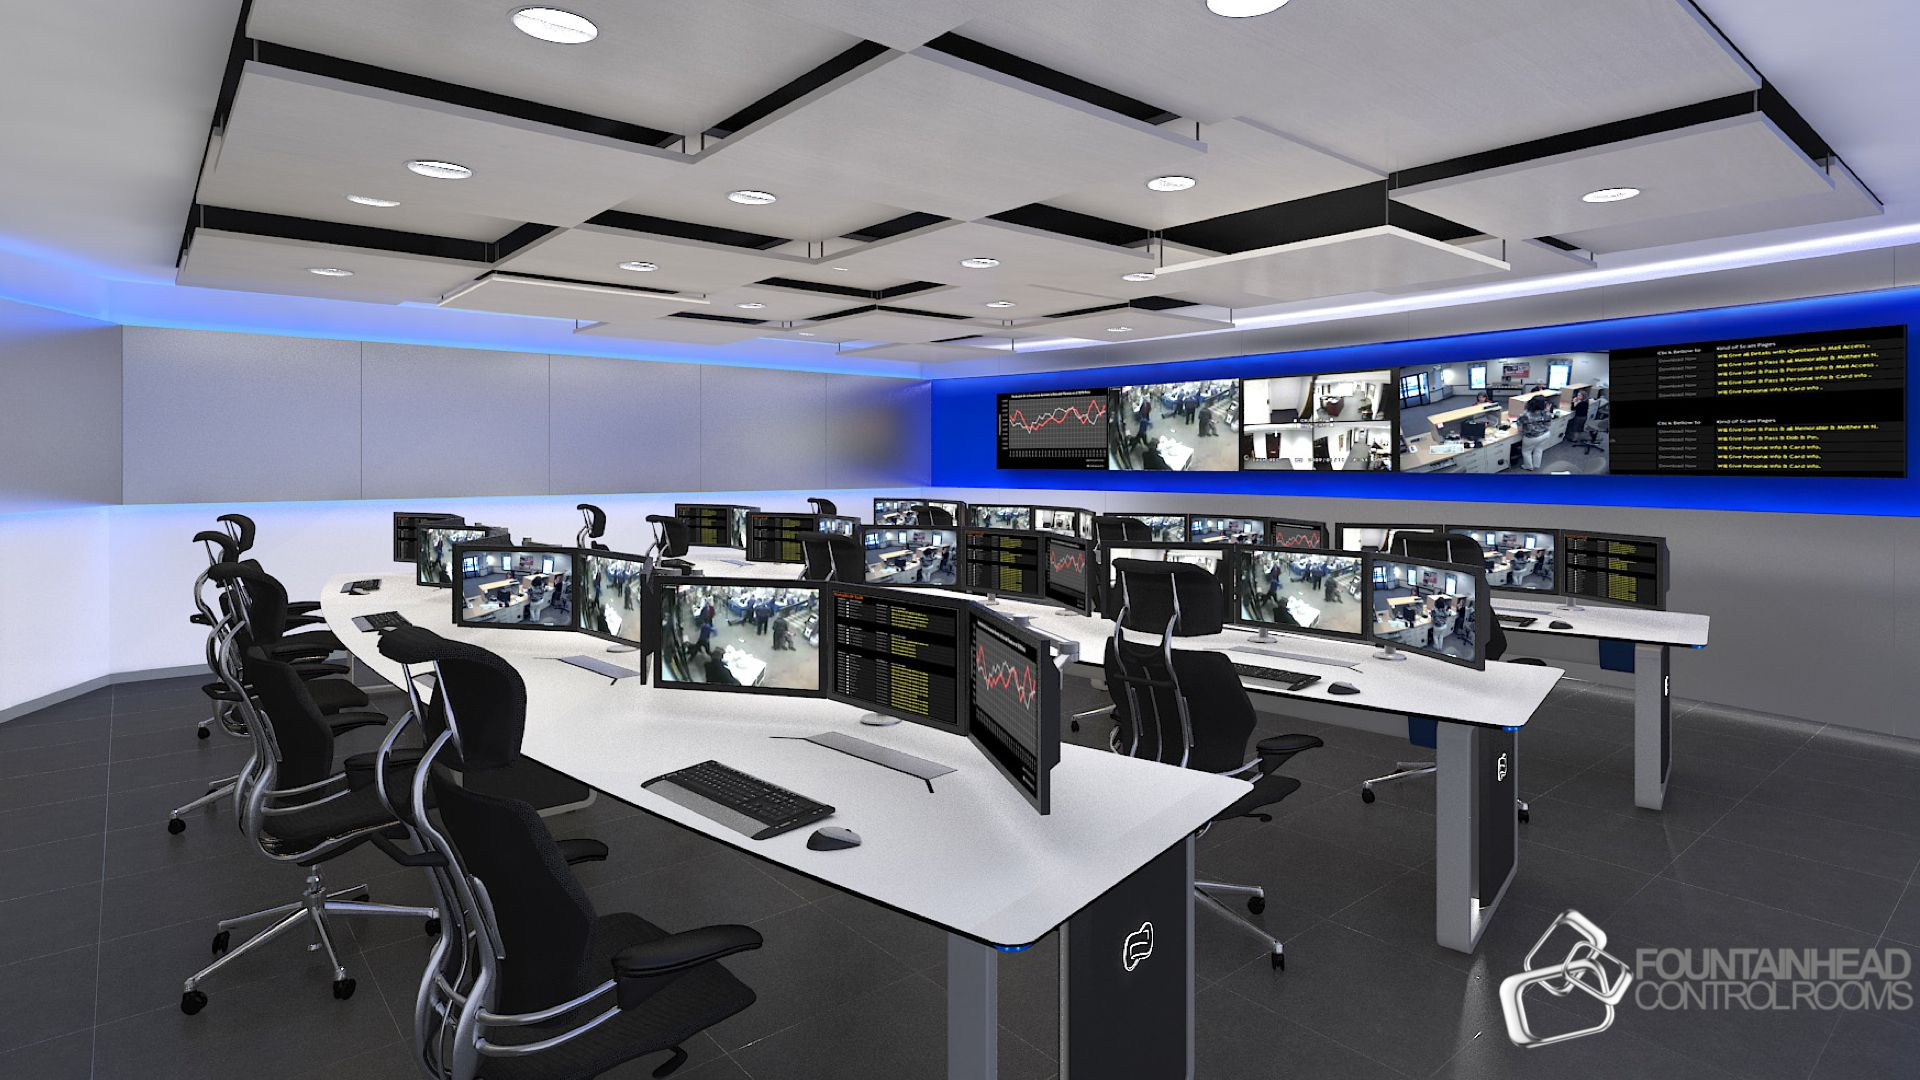 Noc furniture design solution noc control room design 24 for Room 7 design